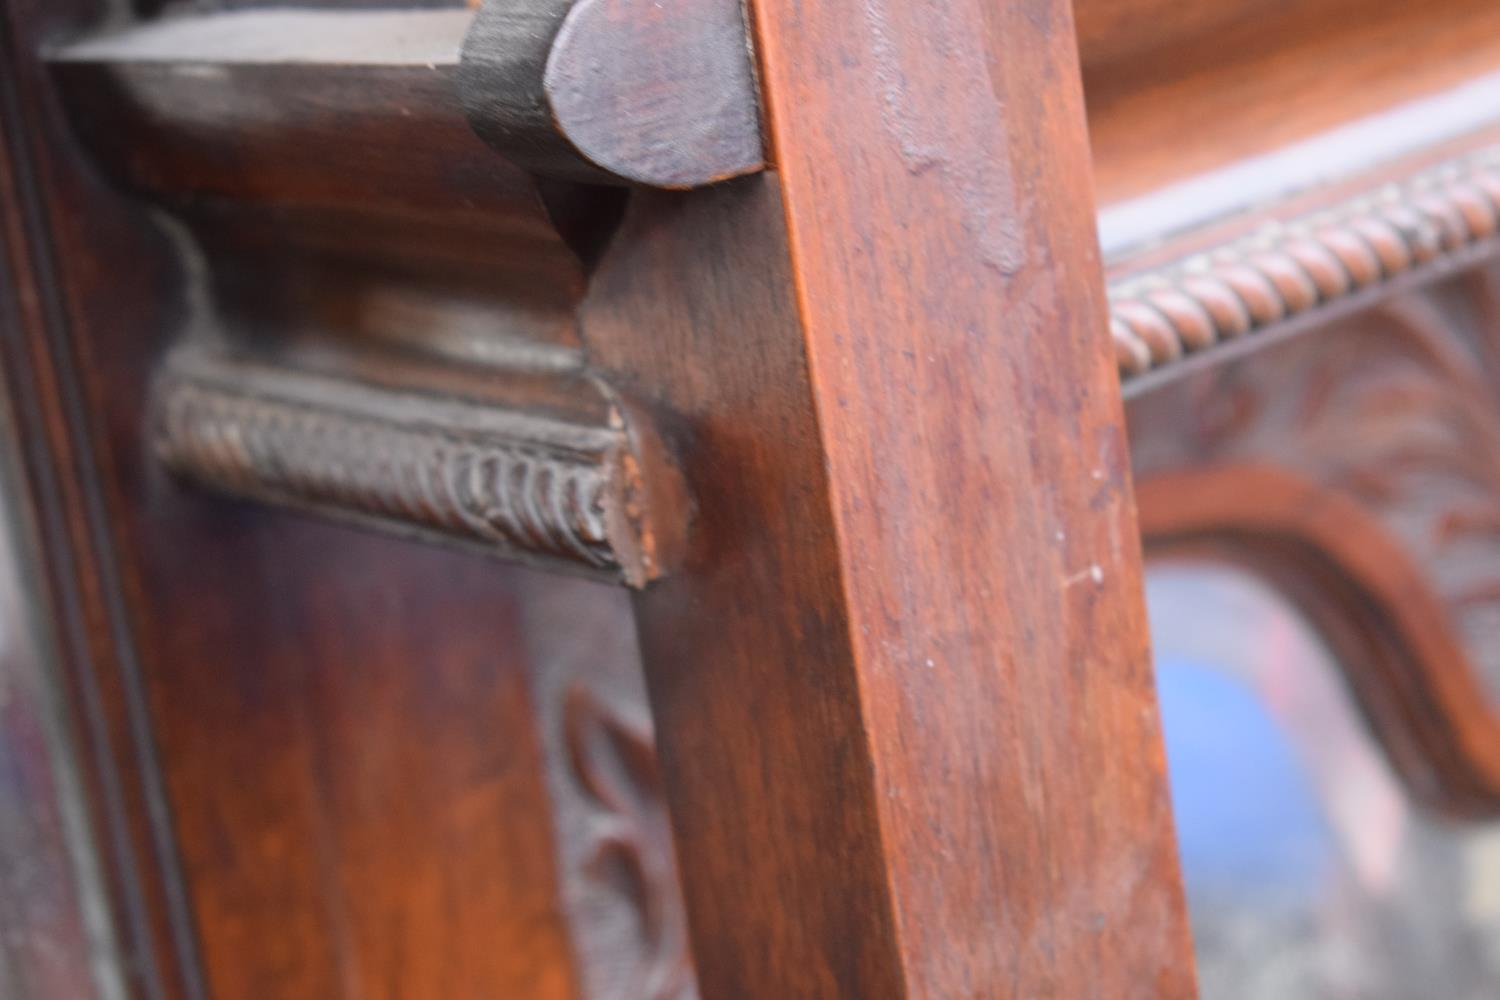 Edwardian large carved oak mirror backed sideboard. 178 x 64 x 224cm height. In good functional - Image 12 of 18